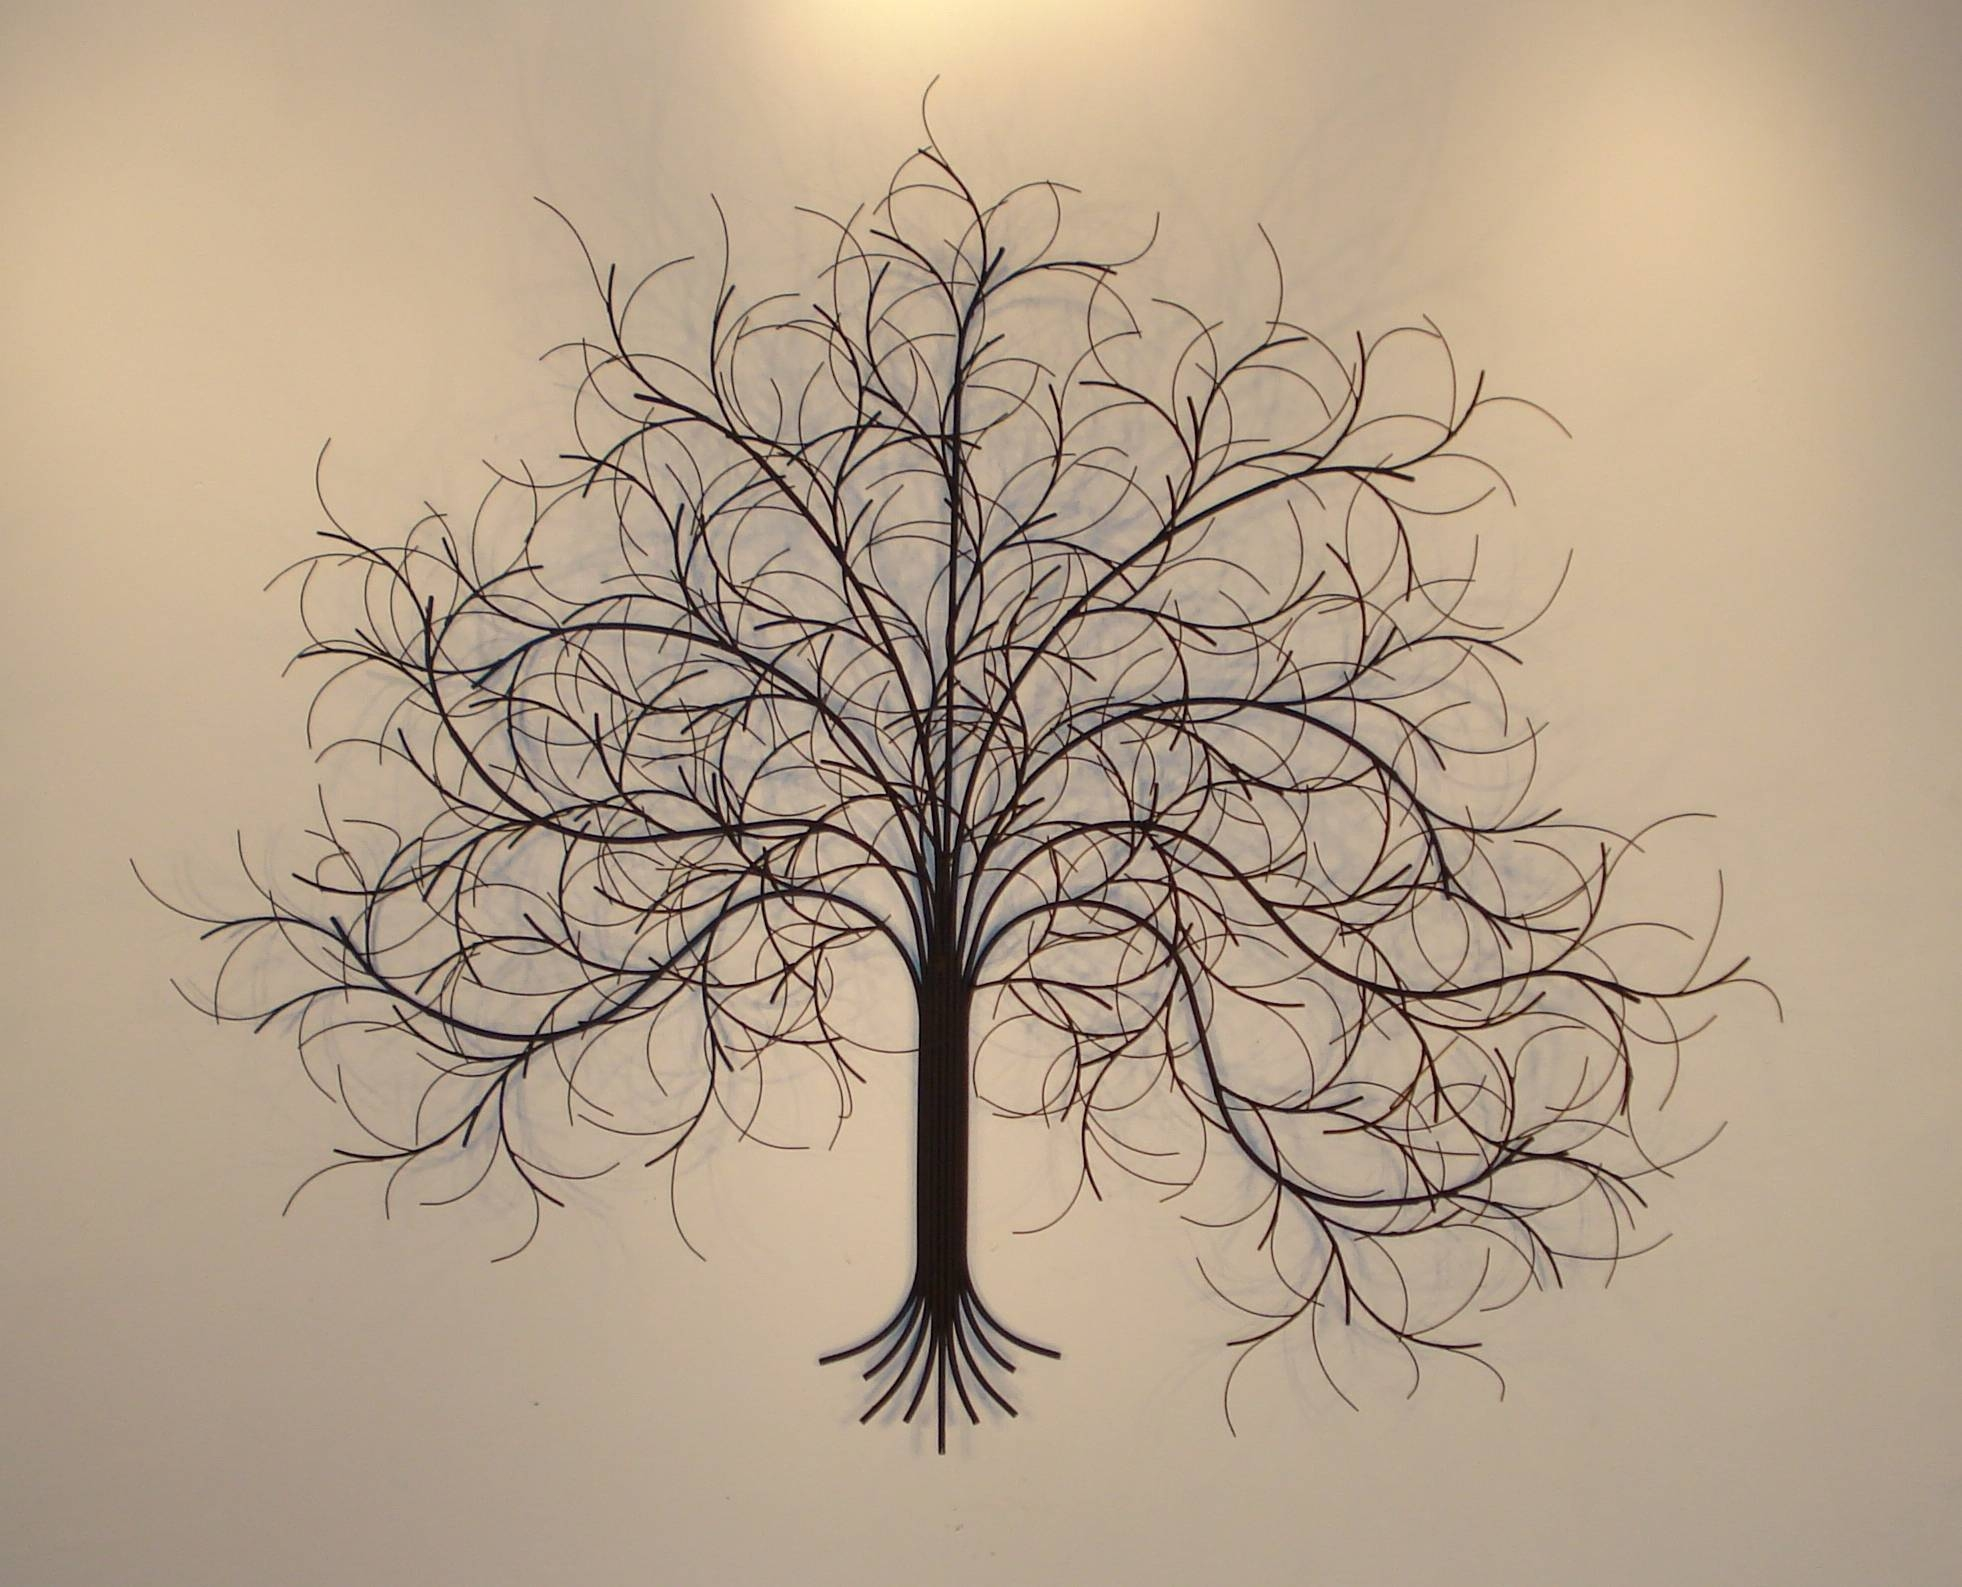 March Tree Metal Wall Art – Metal Sculpture And Wall Decor With Regard To Best And Newest Trees Metal Wall Art (View 9 of 20)